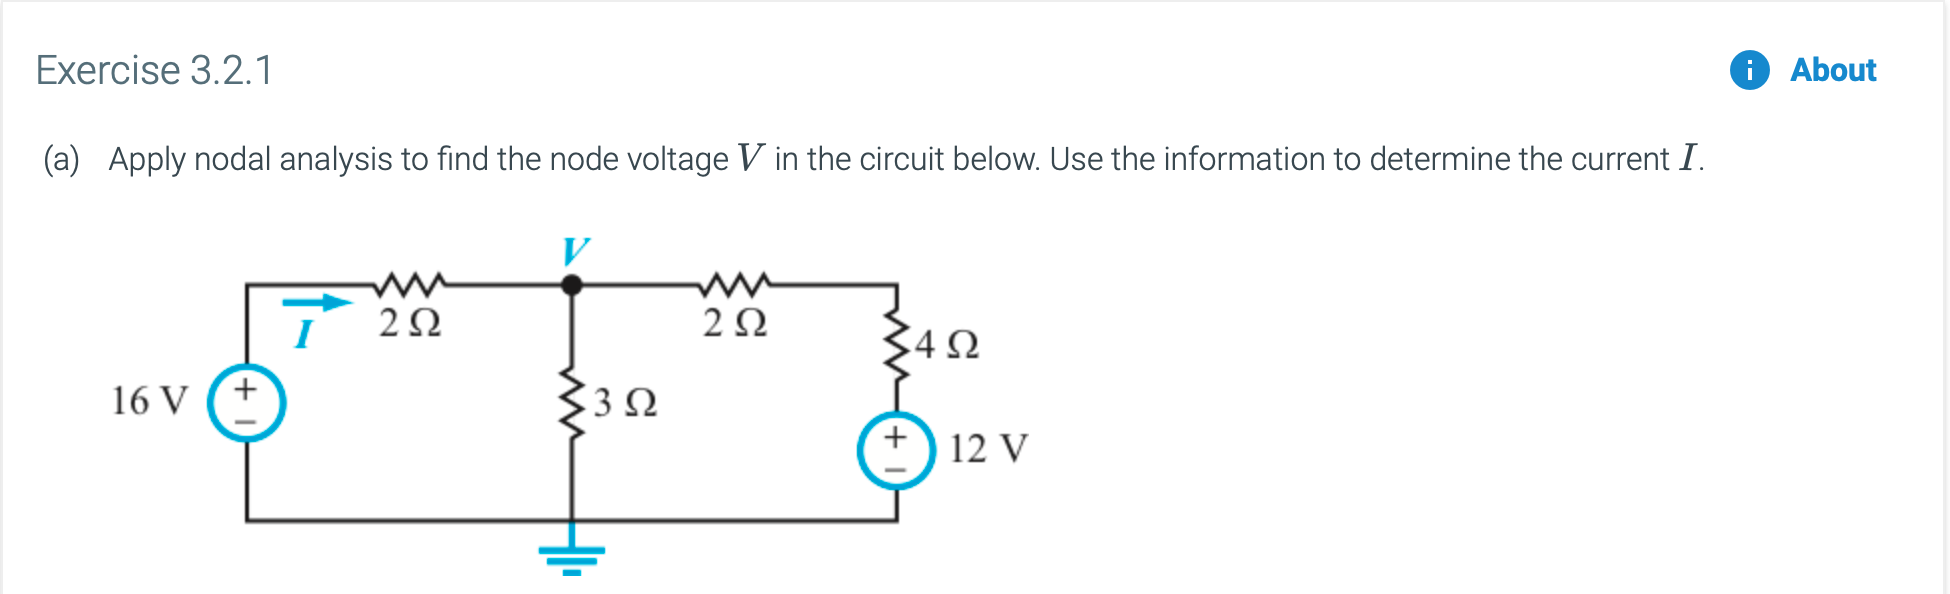 Exercise 3.2.1 About Apply nodal analysis to find the node voltage V in the circuit below. Use the information to determine the current I. (a) w- 2Ω 2Ω 4Ω 3Ω 16 V 12 V